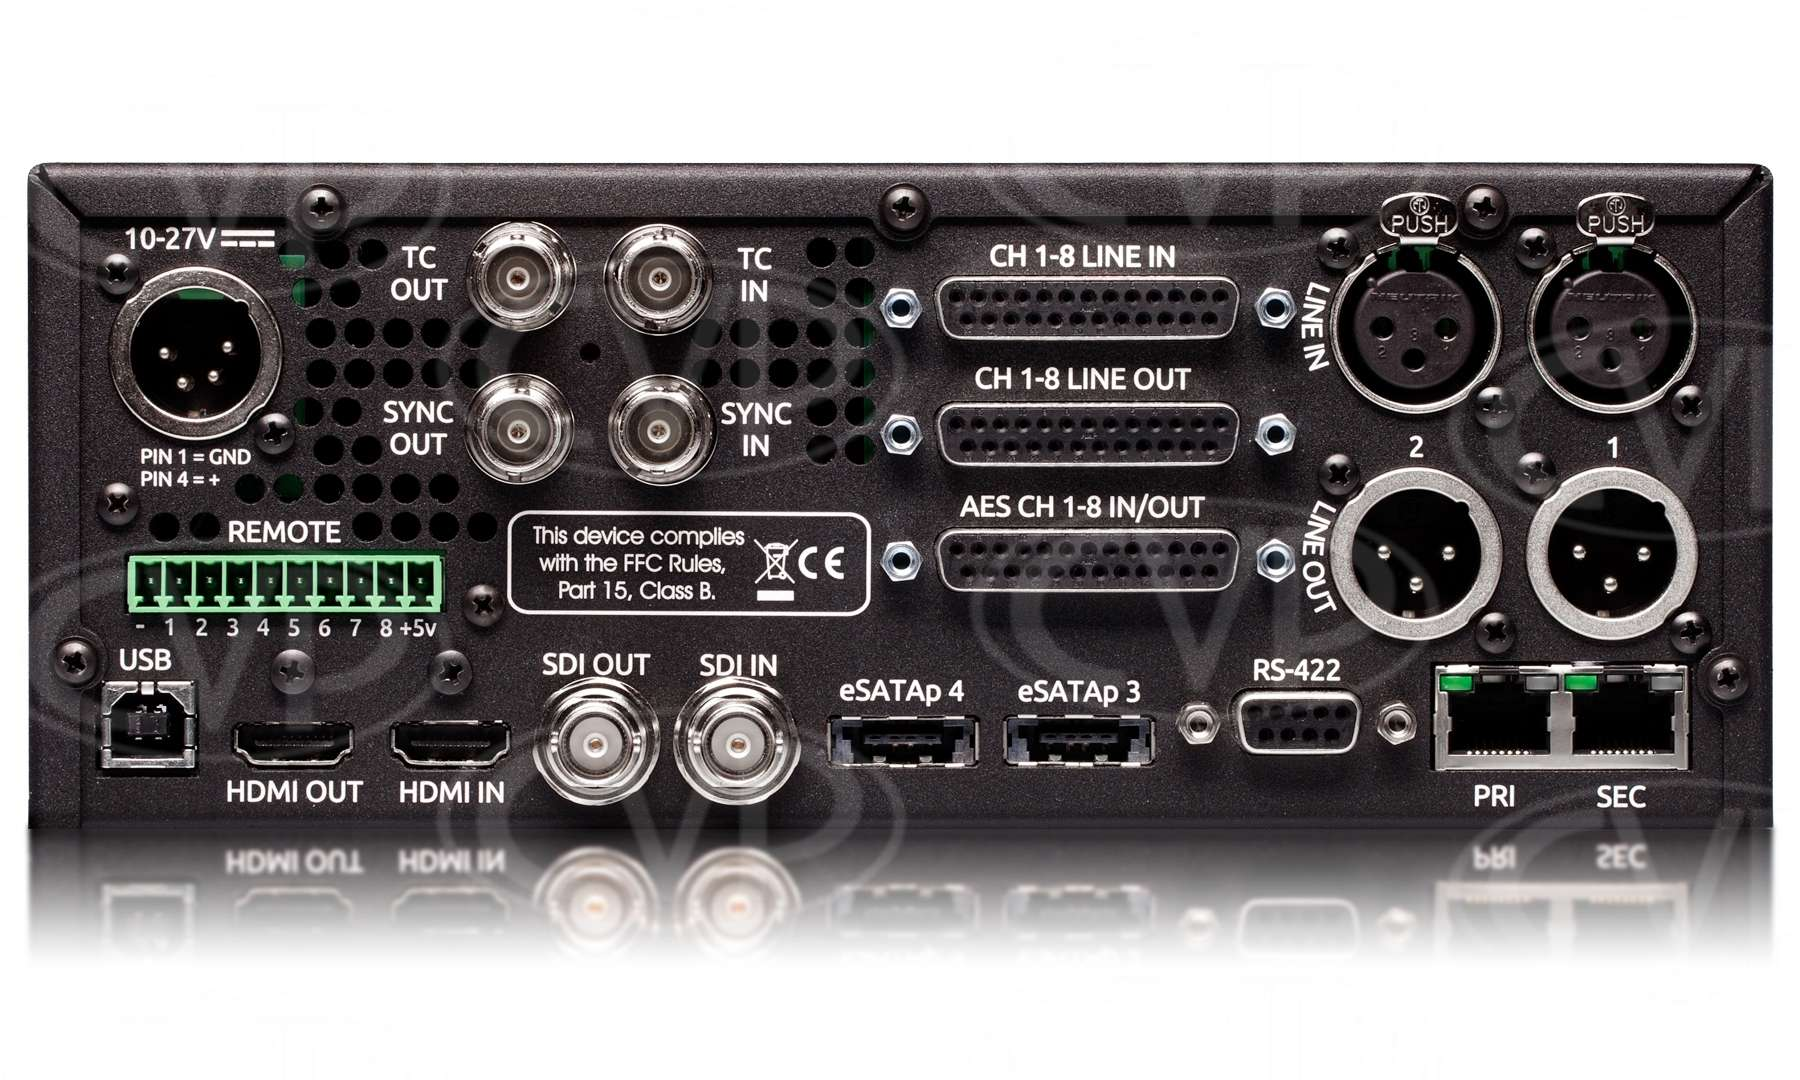 Sound Devices PIX 260i (PIX260i, PIX-260i) Portable Video Recorder with